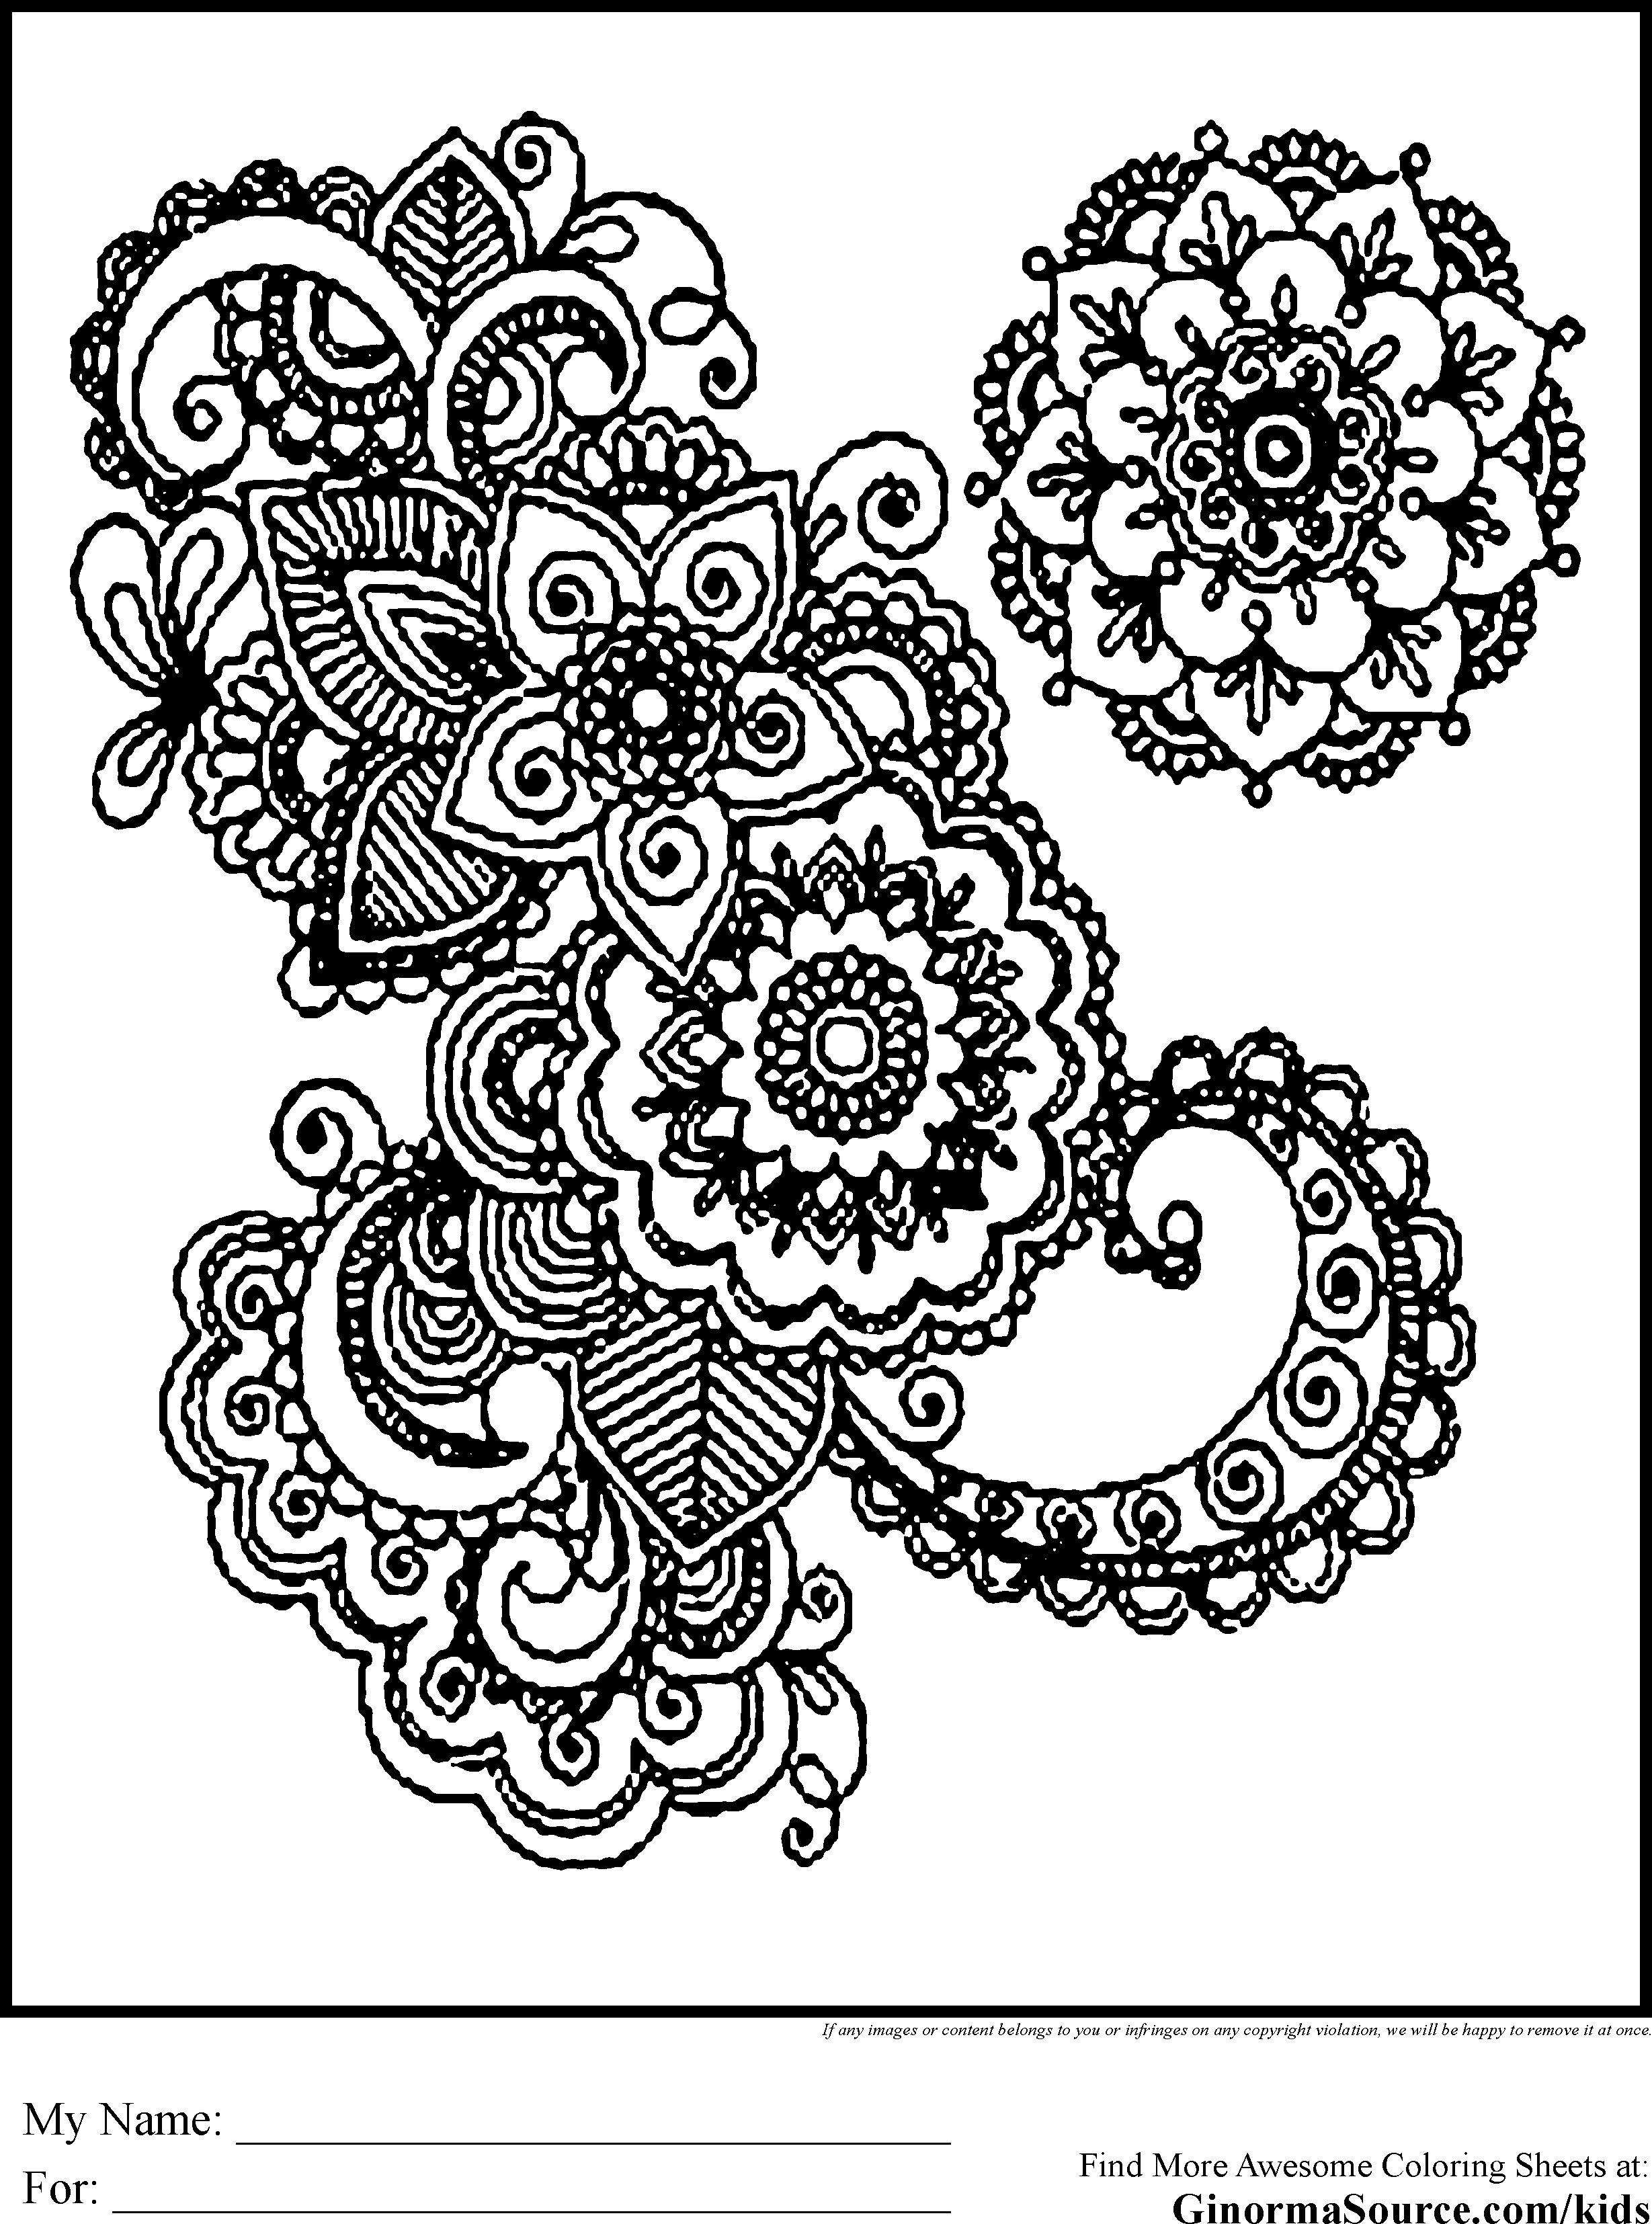 intricate coloring pages intricate design coloring pages az sketch coloring page coloring pages intricate